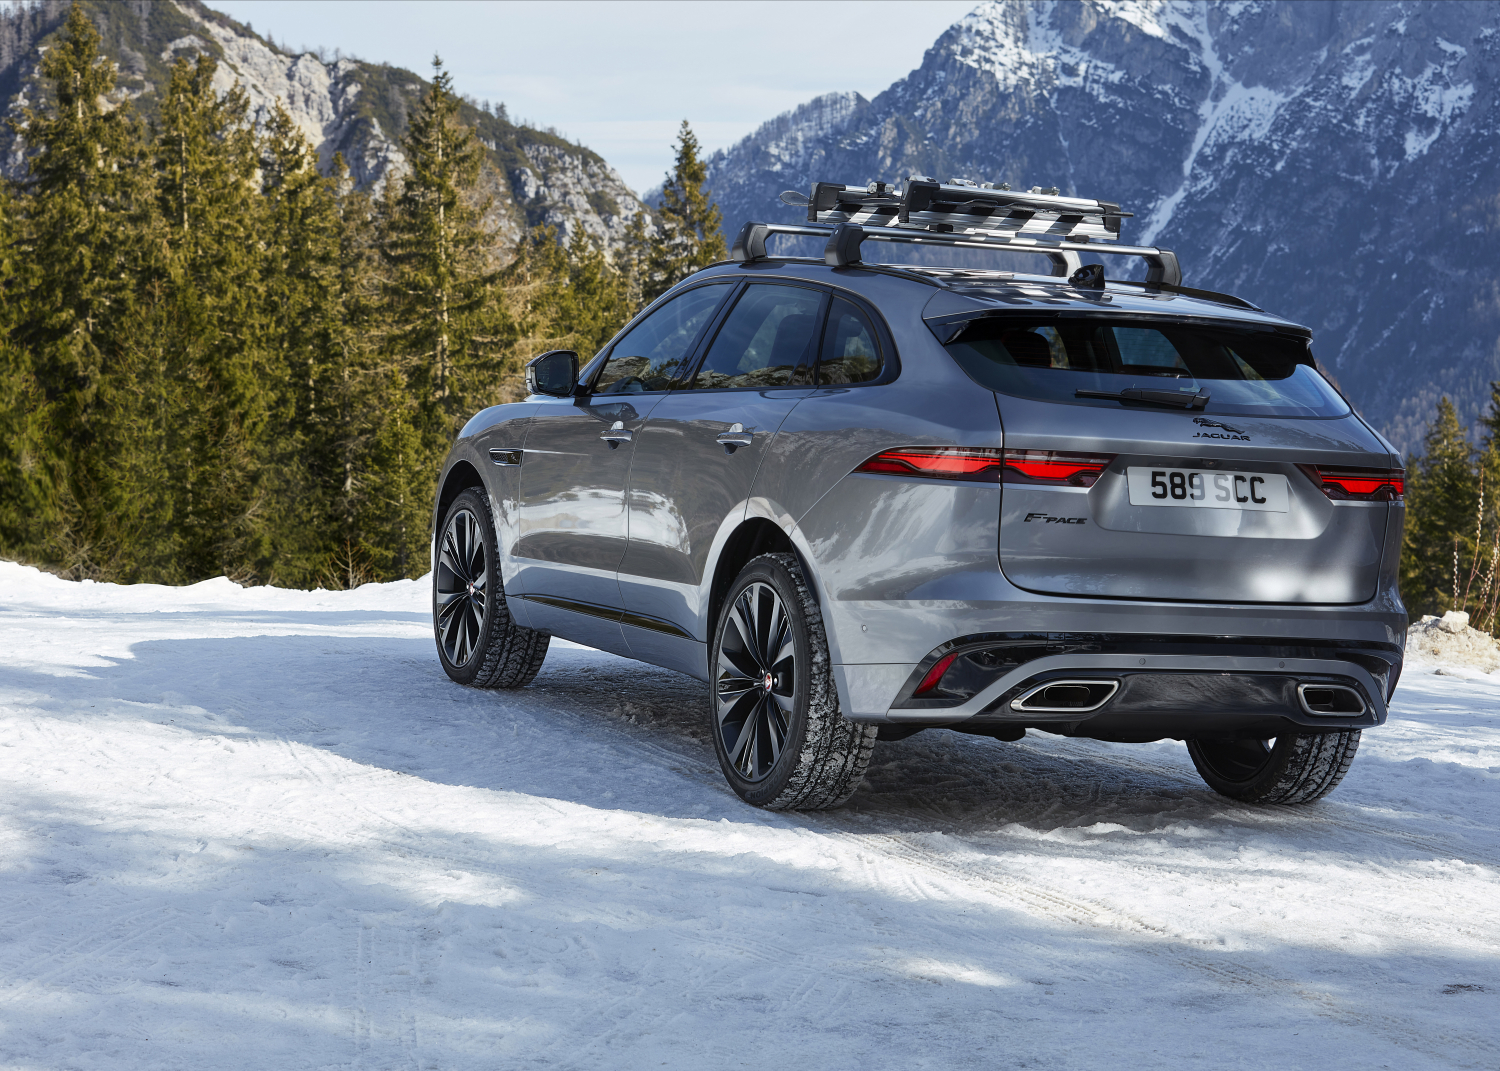 New Jaguar F Pace Luxurious Connected Electrified Jlr Corporate Website